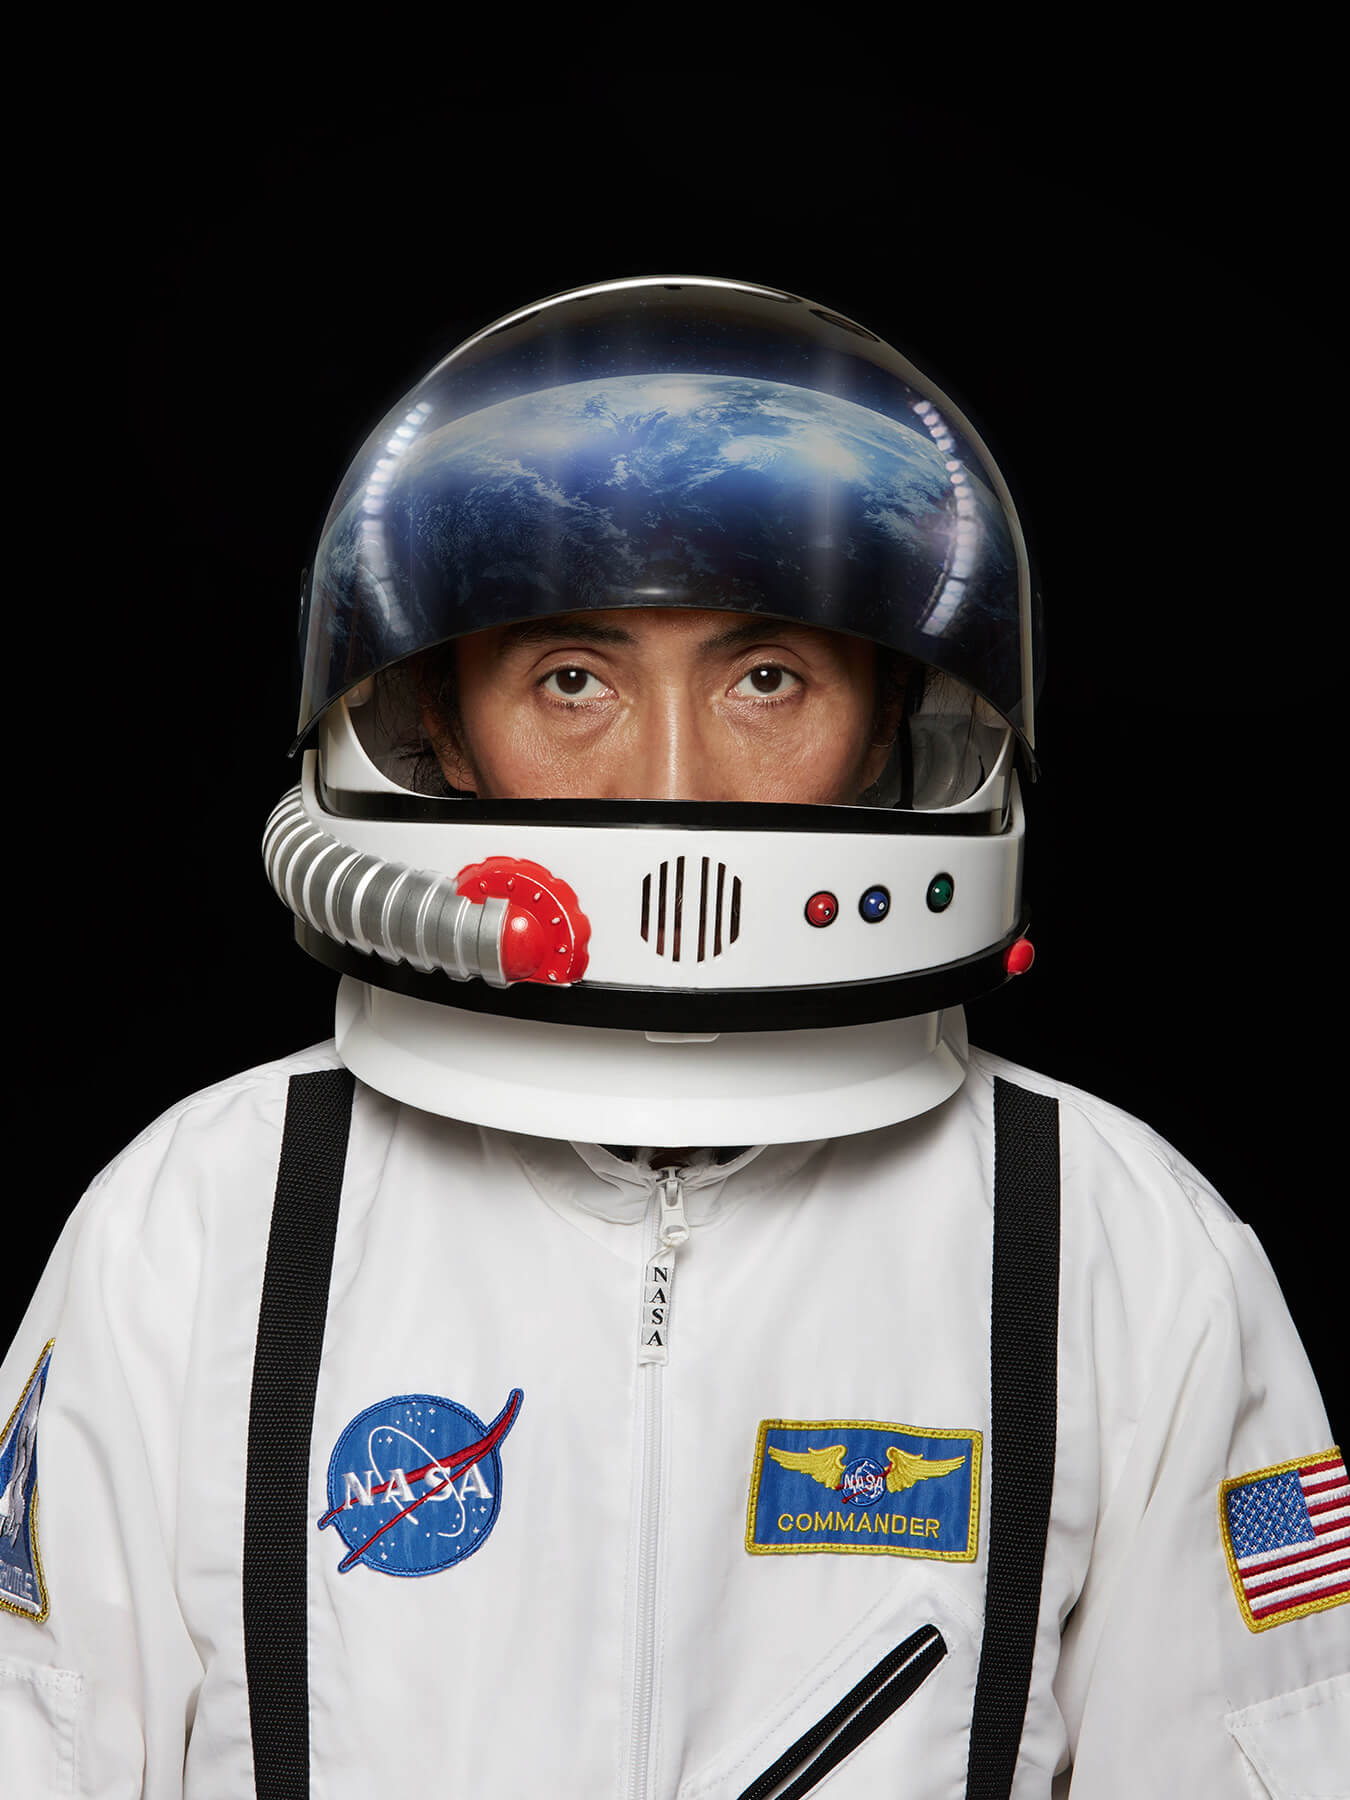 13 Jan 2018 Derong is dressed as an astronaut